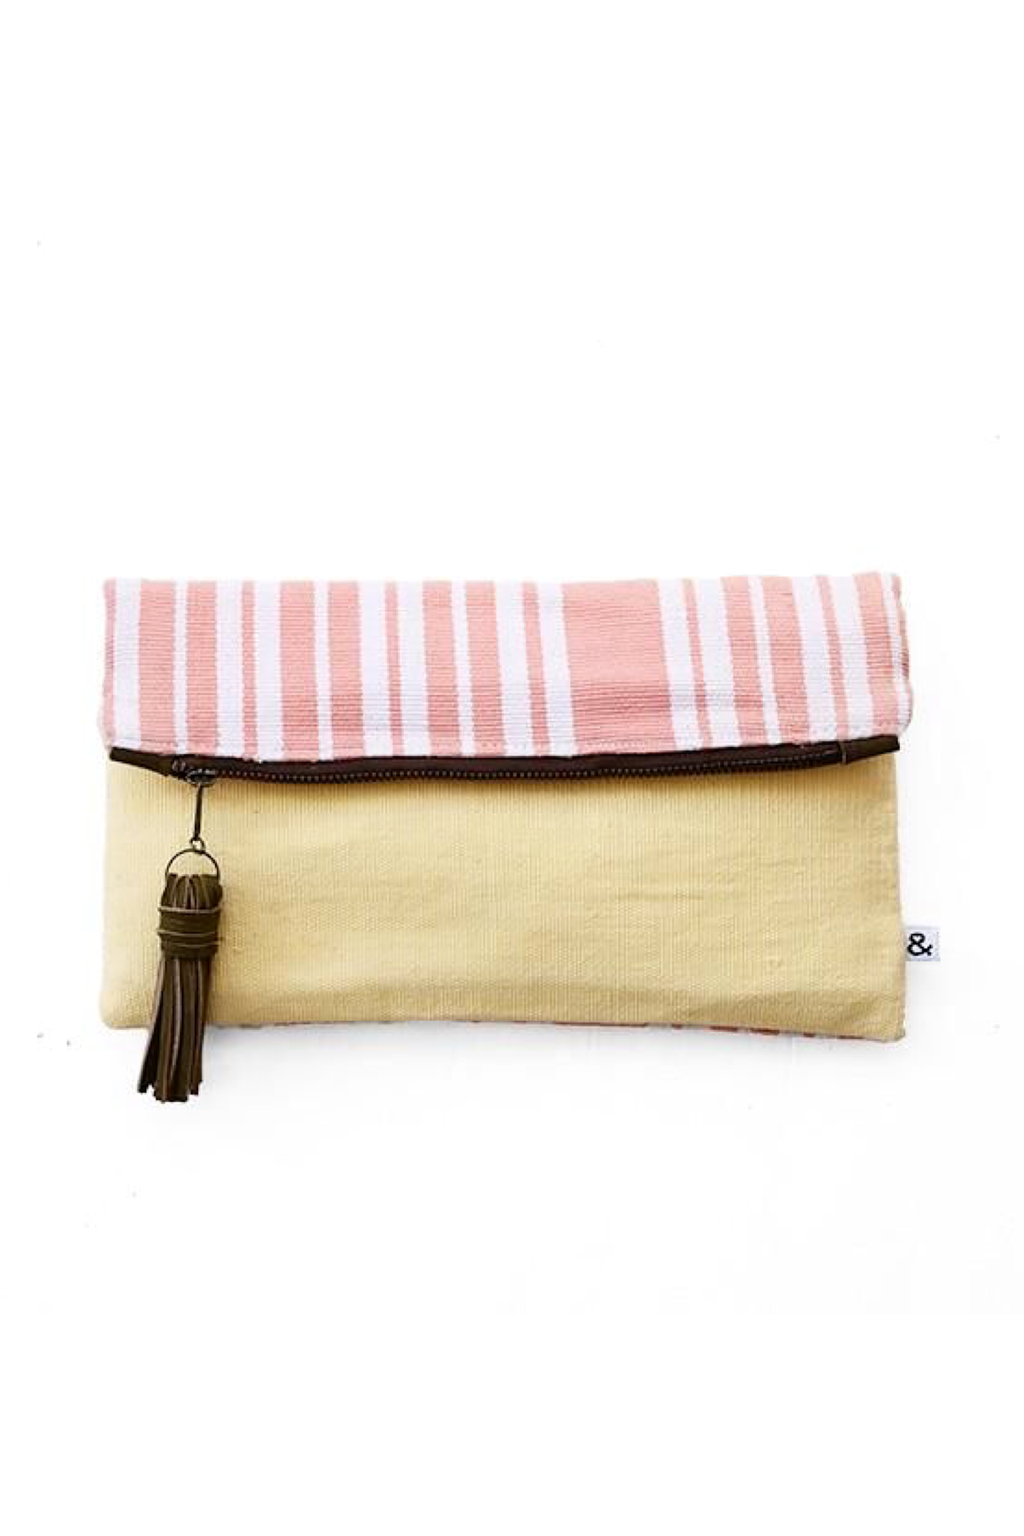 Blush Pink & Sunshine Yellow Fold Over Clutch - ROSE MADE SHOP